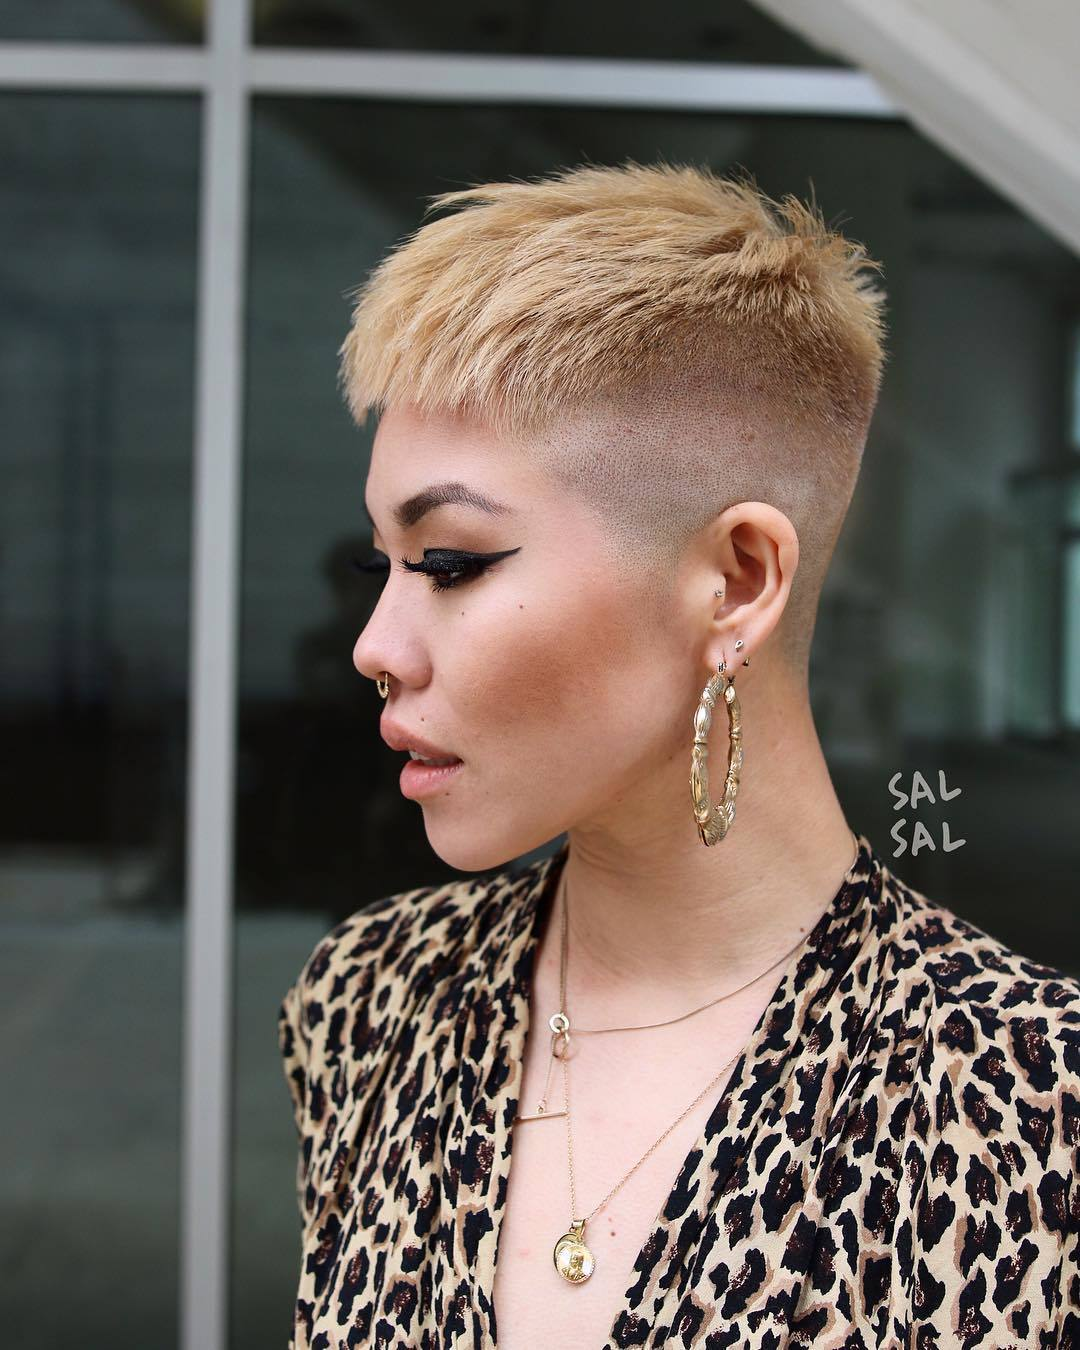 Shaved Sides Pixie : shaved, sides, pixie, Pixie, Short, Hairstyles